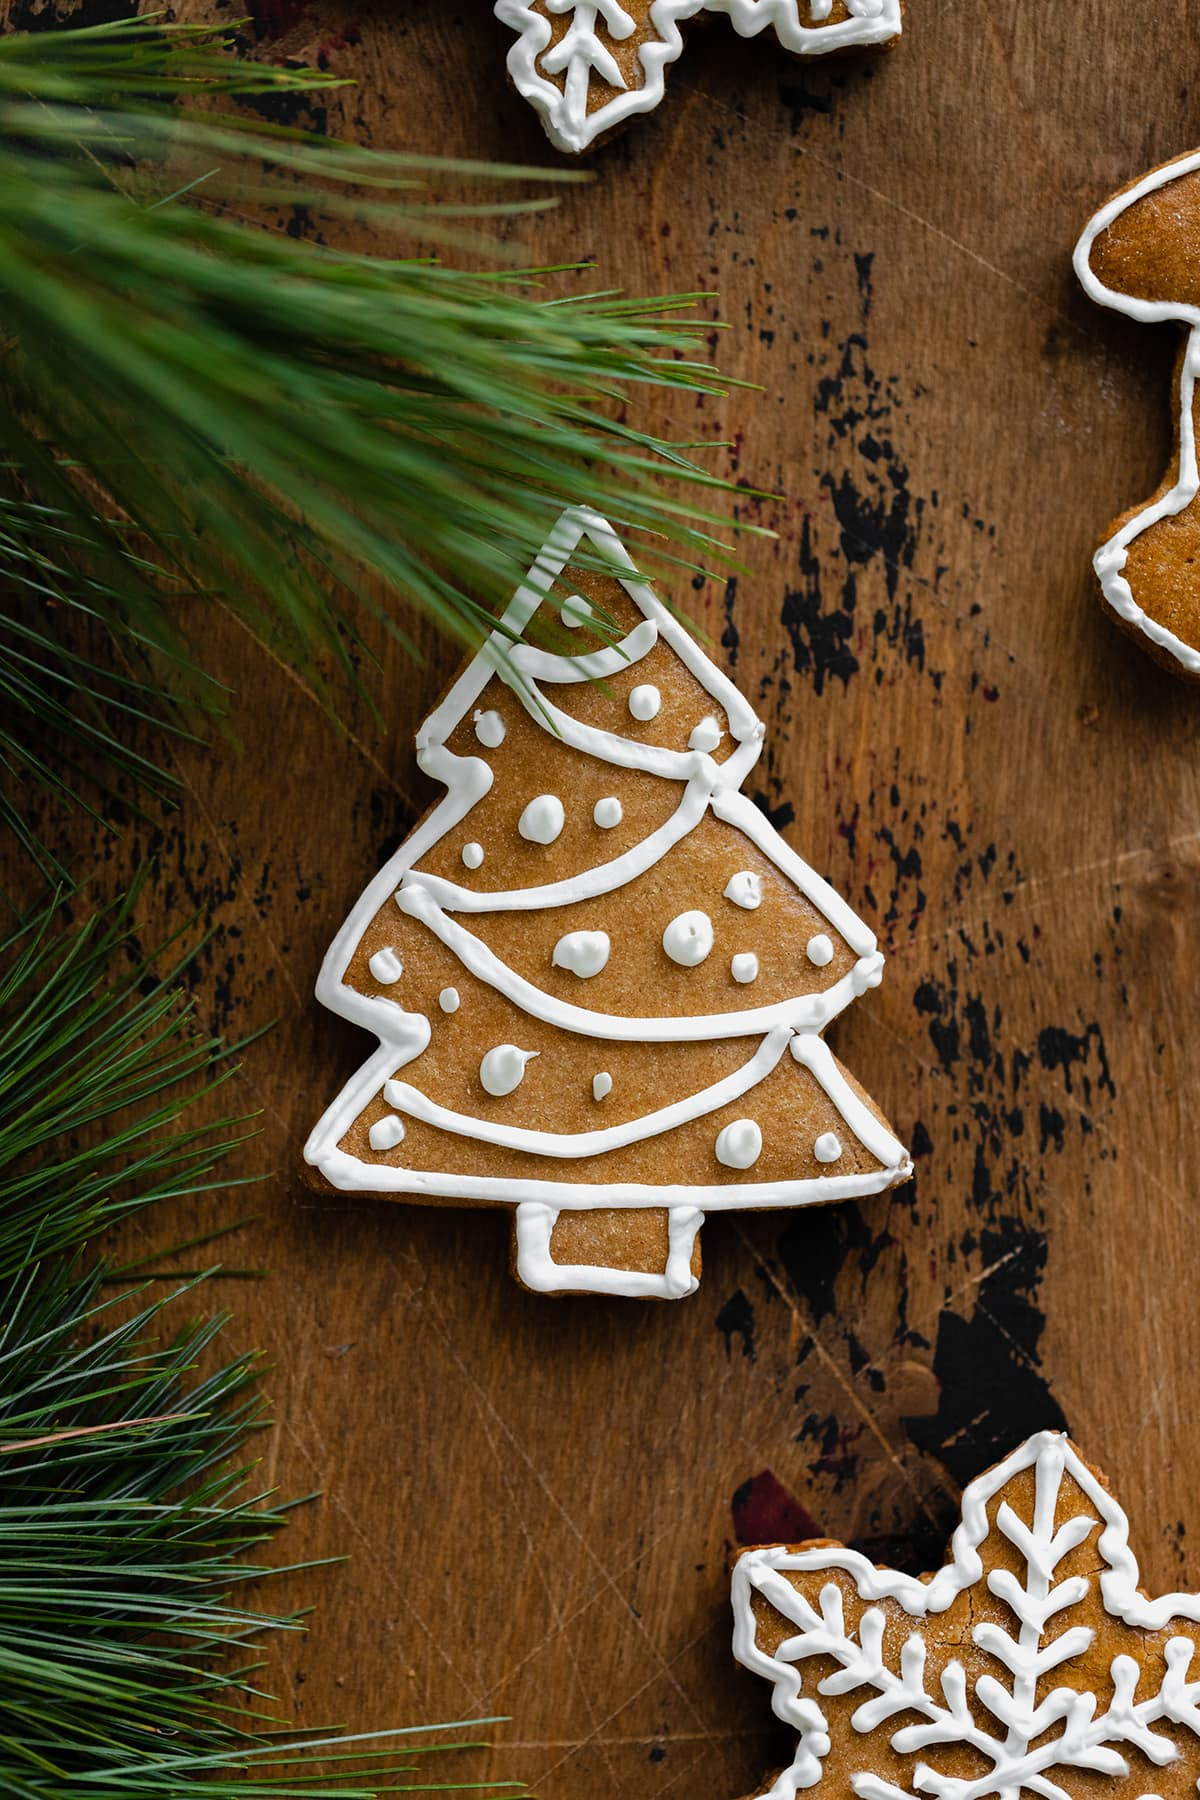 A close up of a Christmas tree shaped gingerbread cookie on a light wooden background. Decorated with white icing.